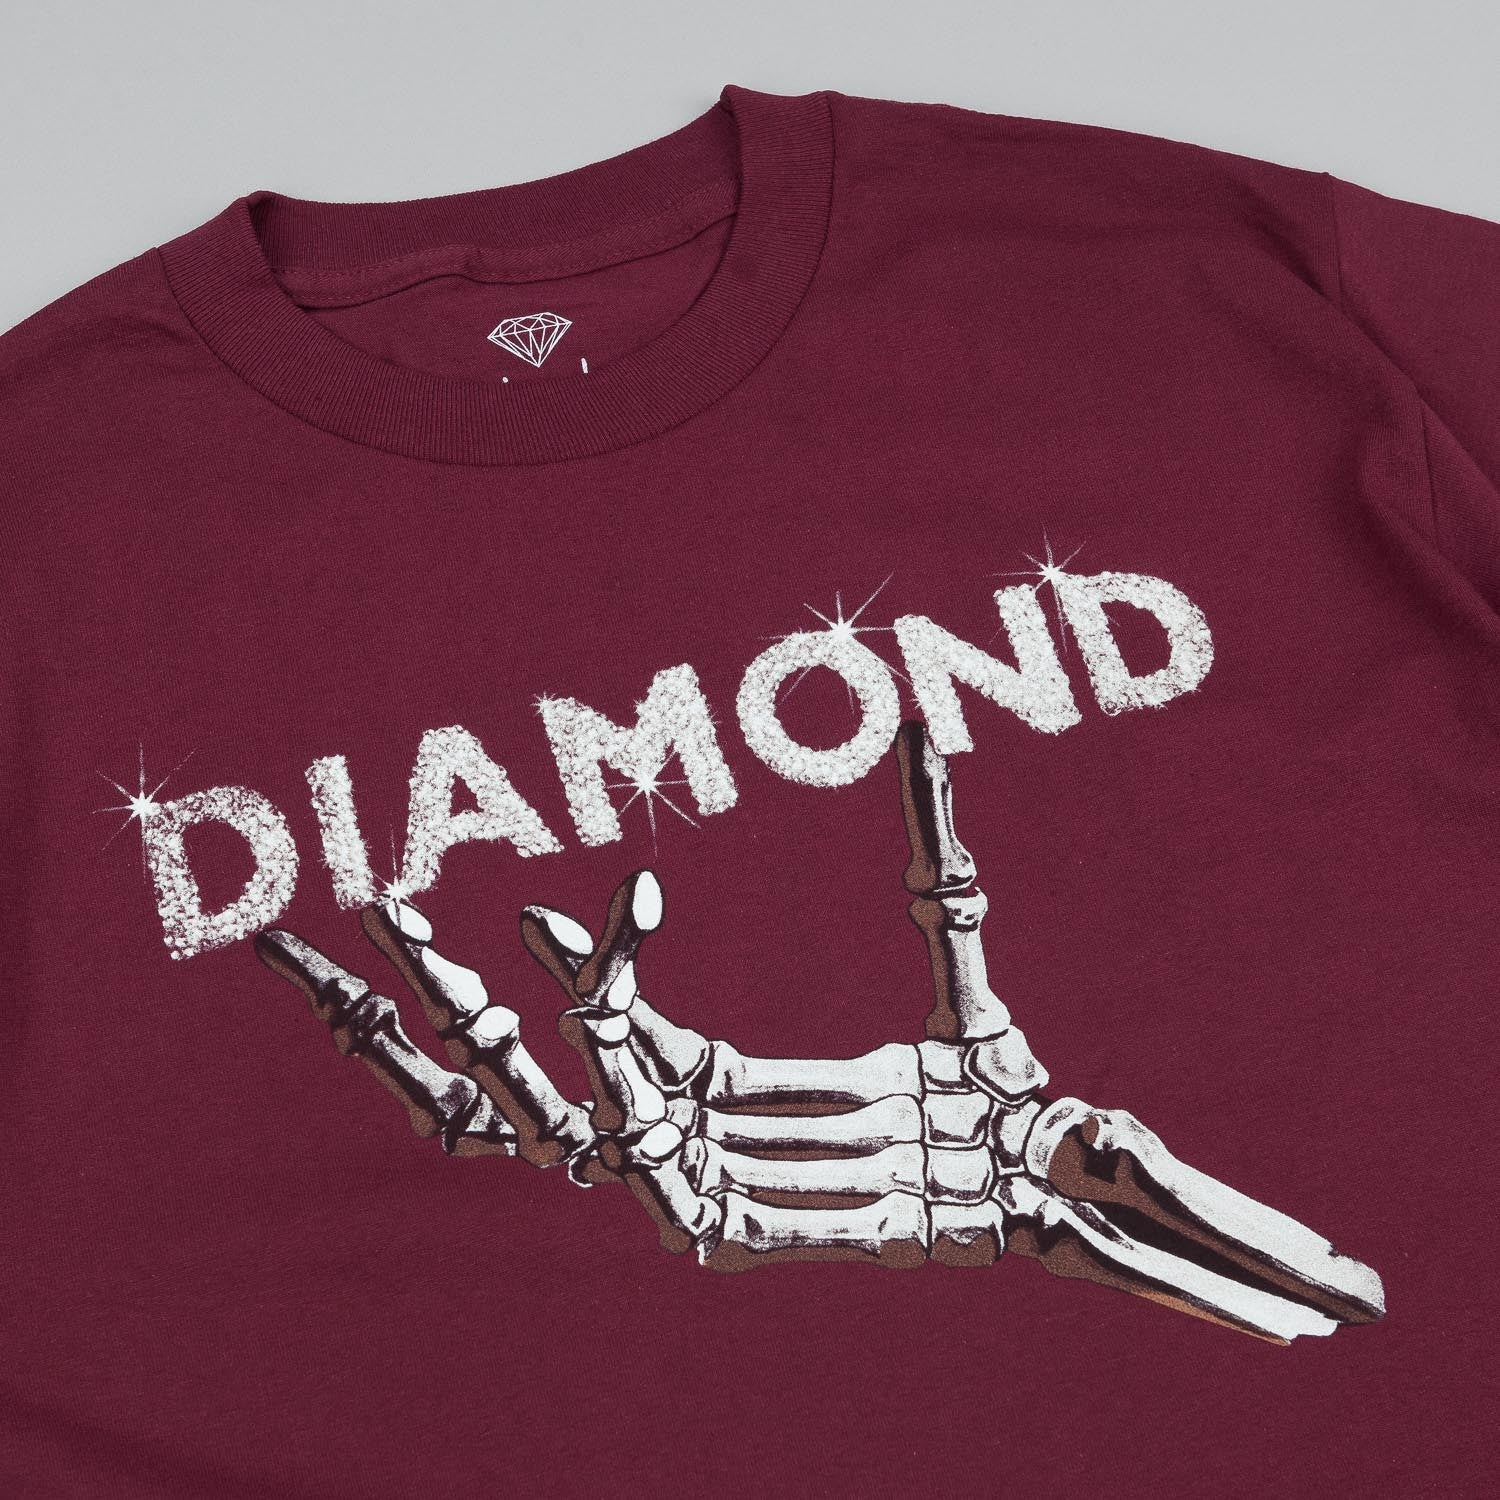 Diamond Styx and Stones T-Shirt Burgundy